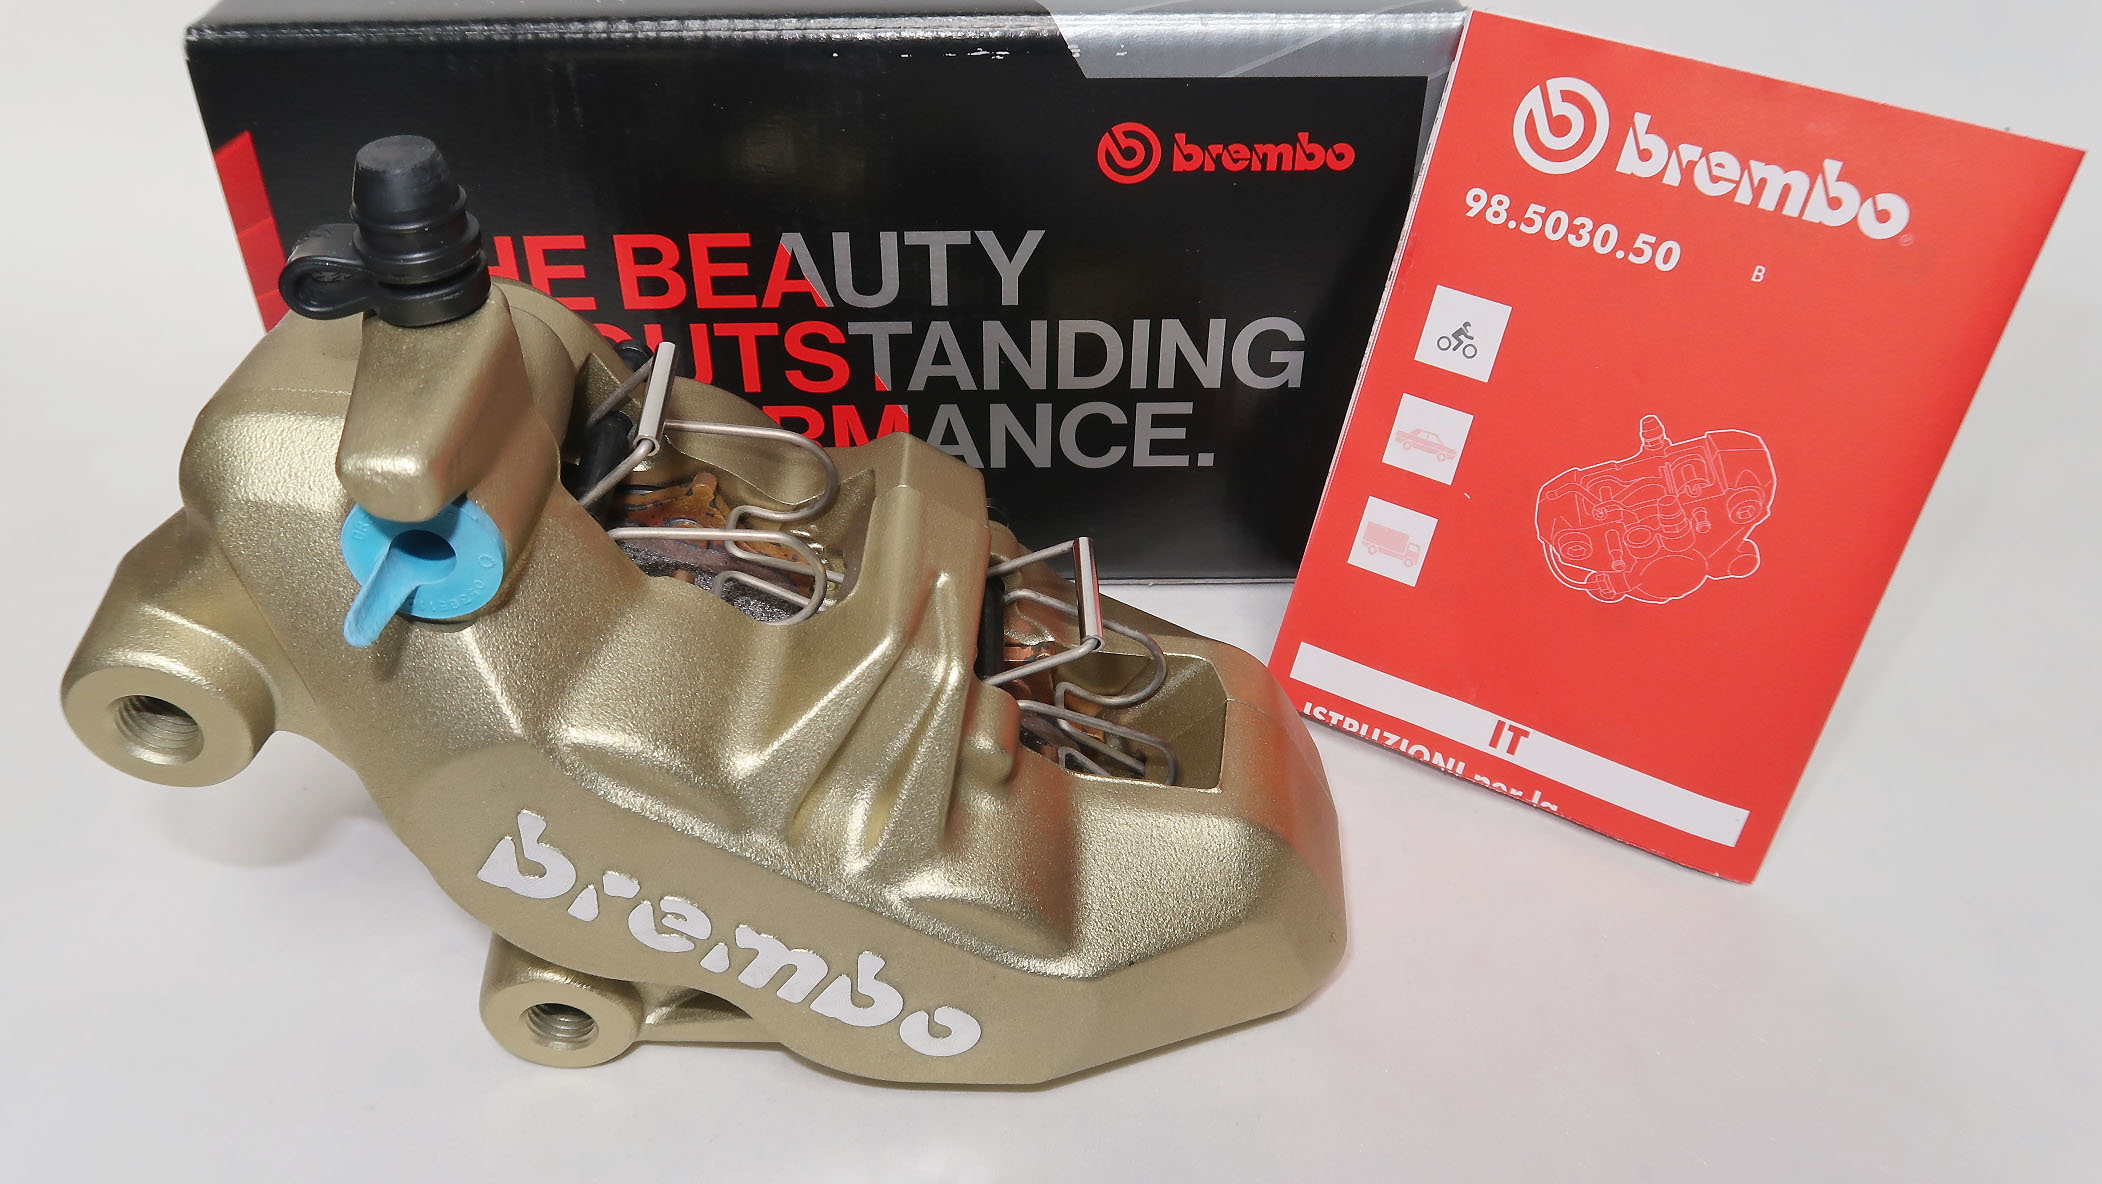 Brembo Caliper P4 34/34, gold, left side